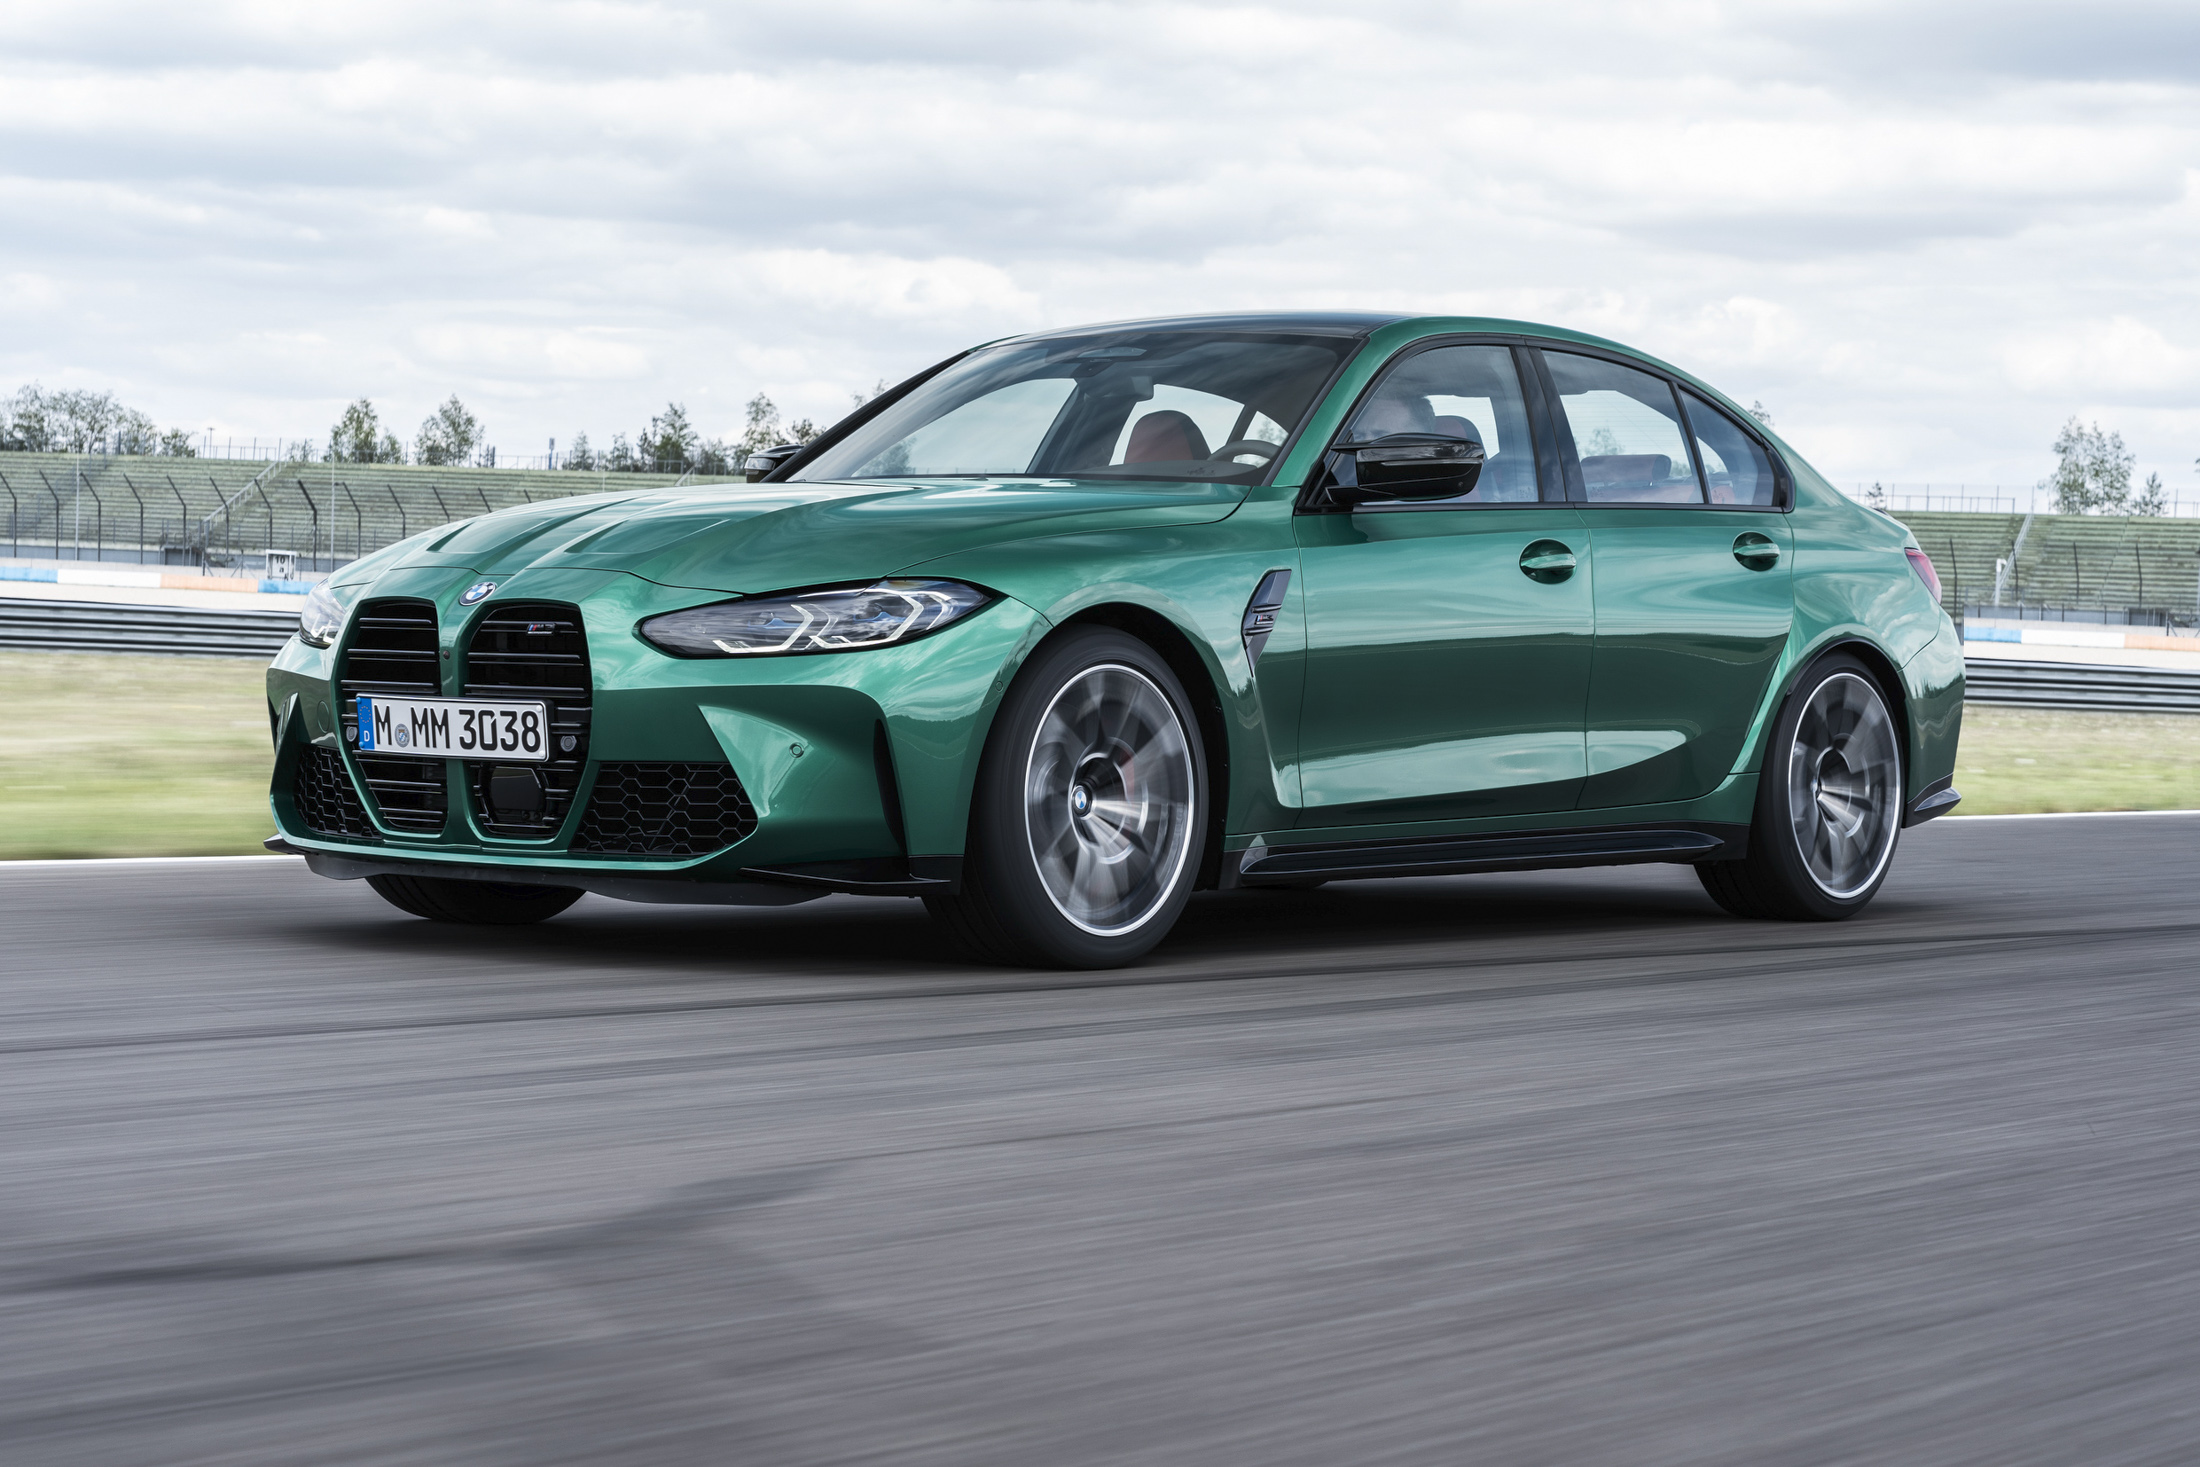 allnew bmw m3 sedan and m4 coupe coming in 2021 – wheelsca